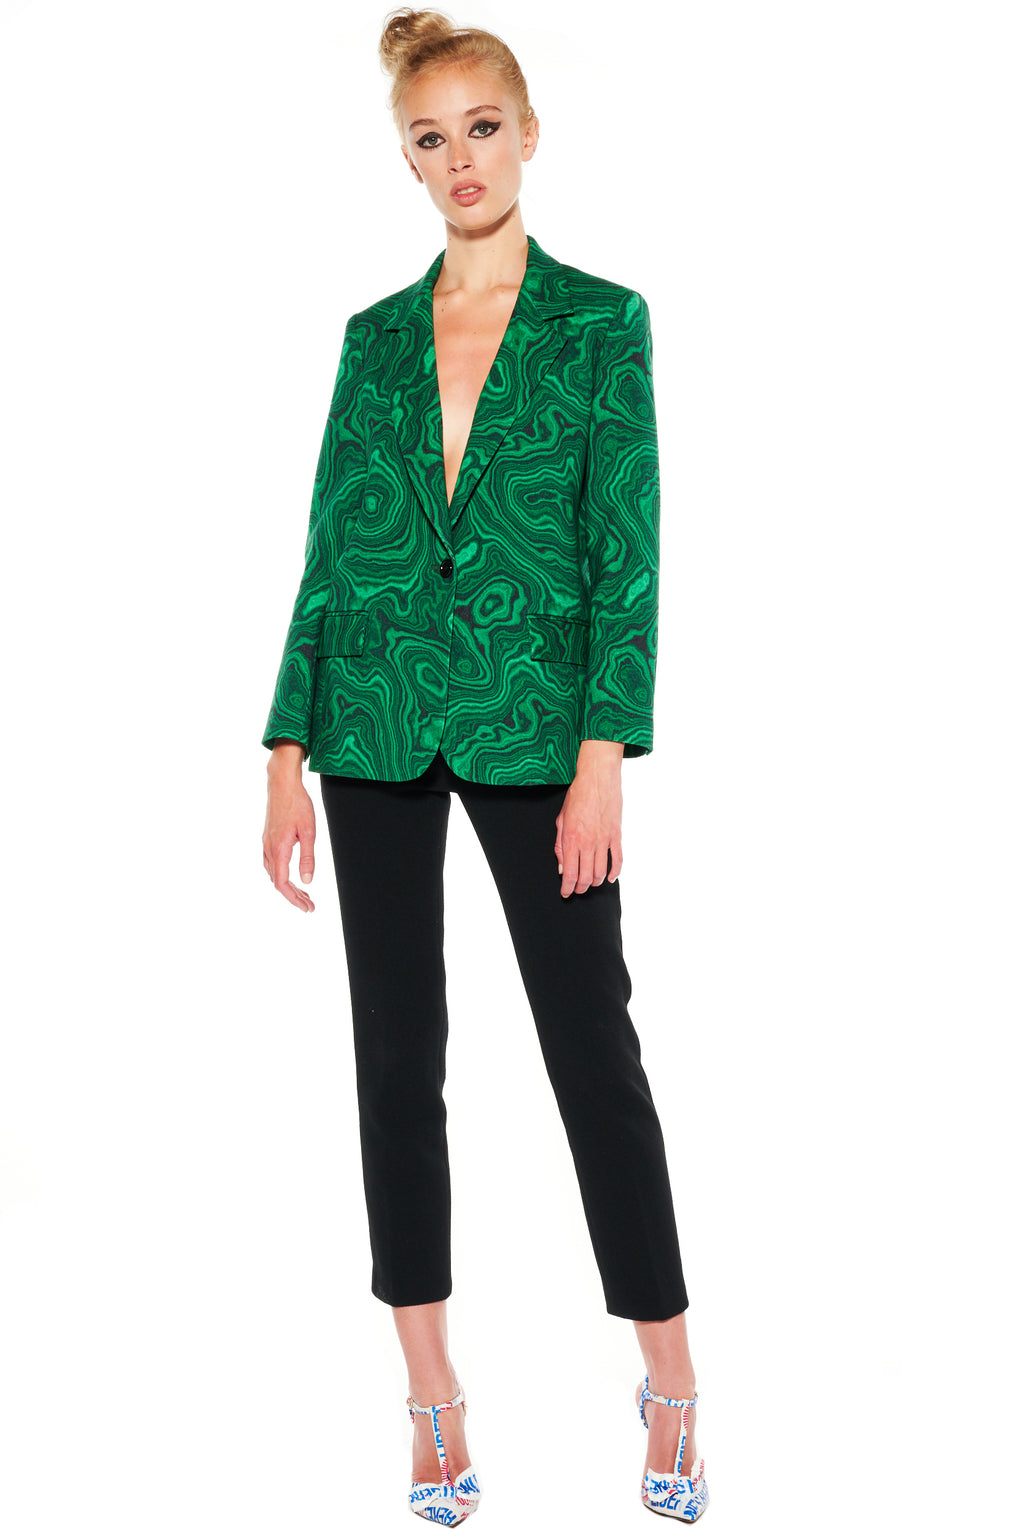 'HIGH AS A MALACHITE' LONG BLAZER - Women's Jackets & Coats - Libertine